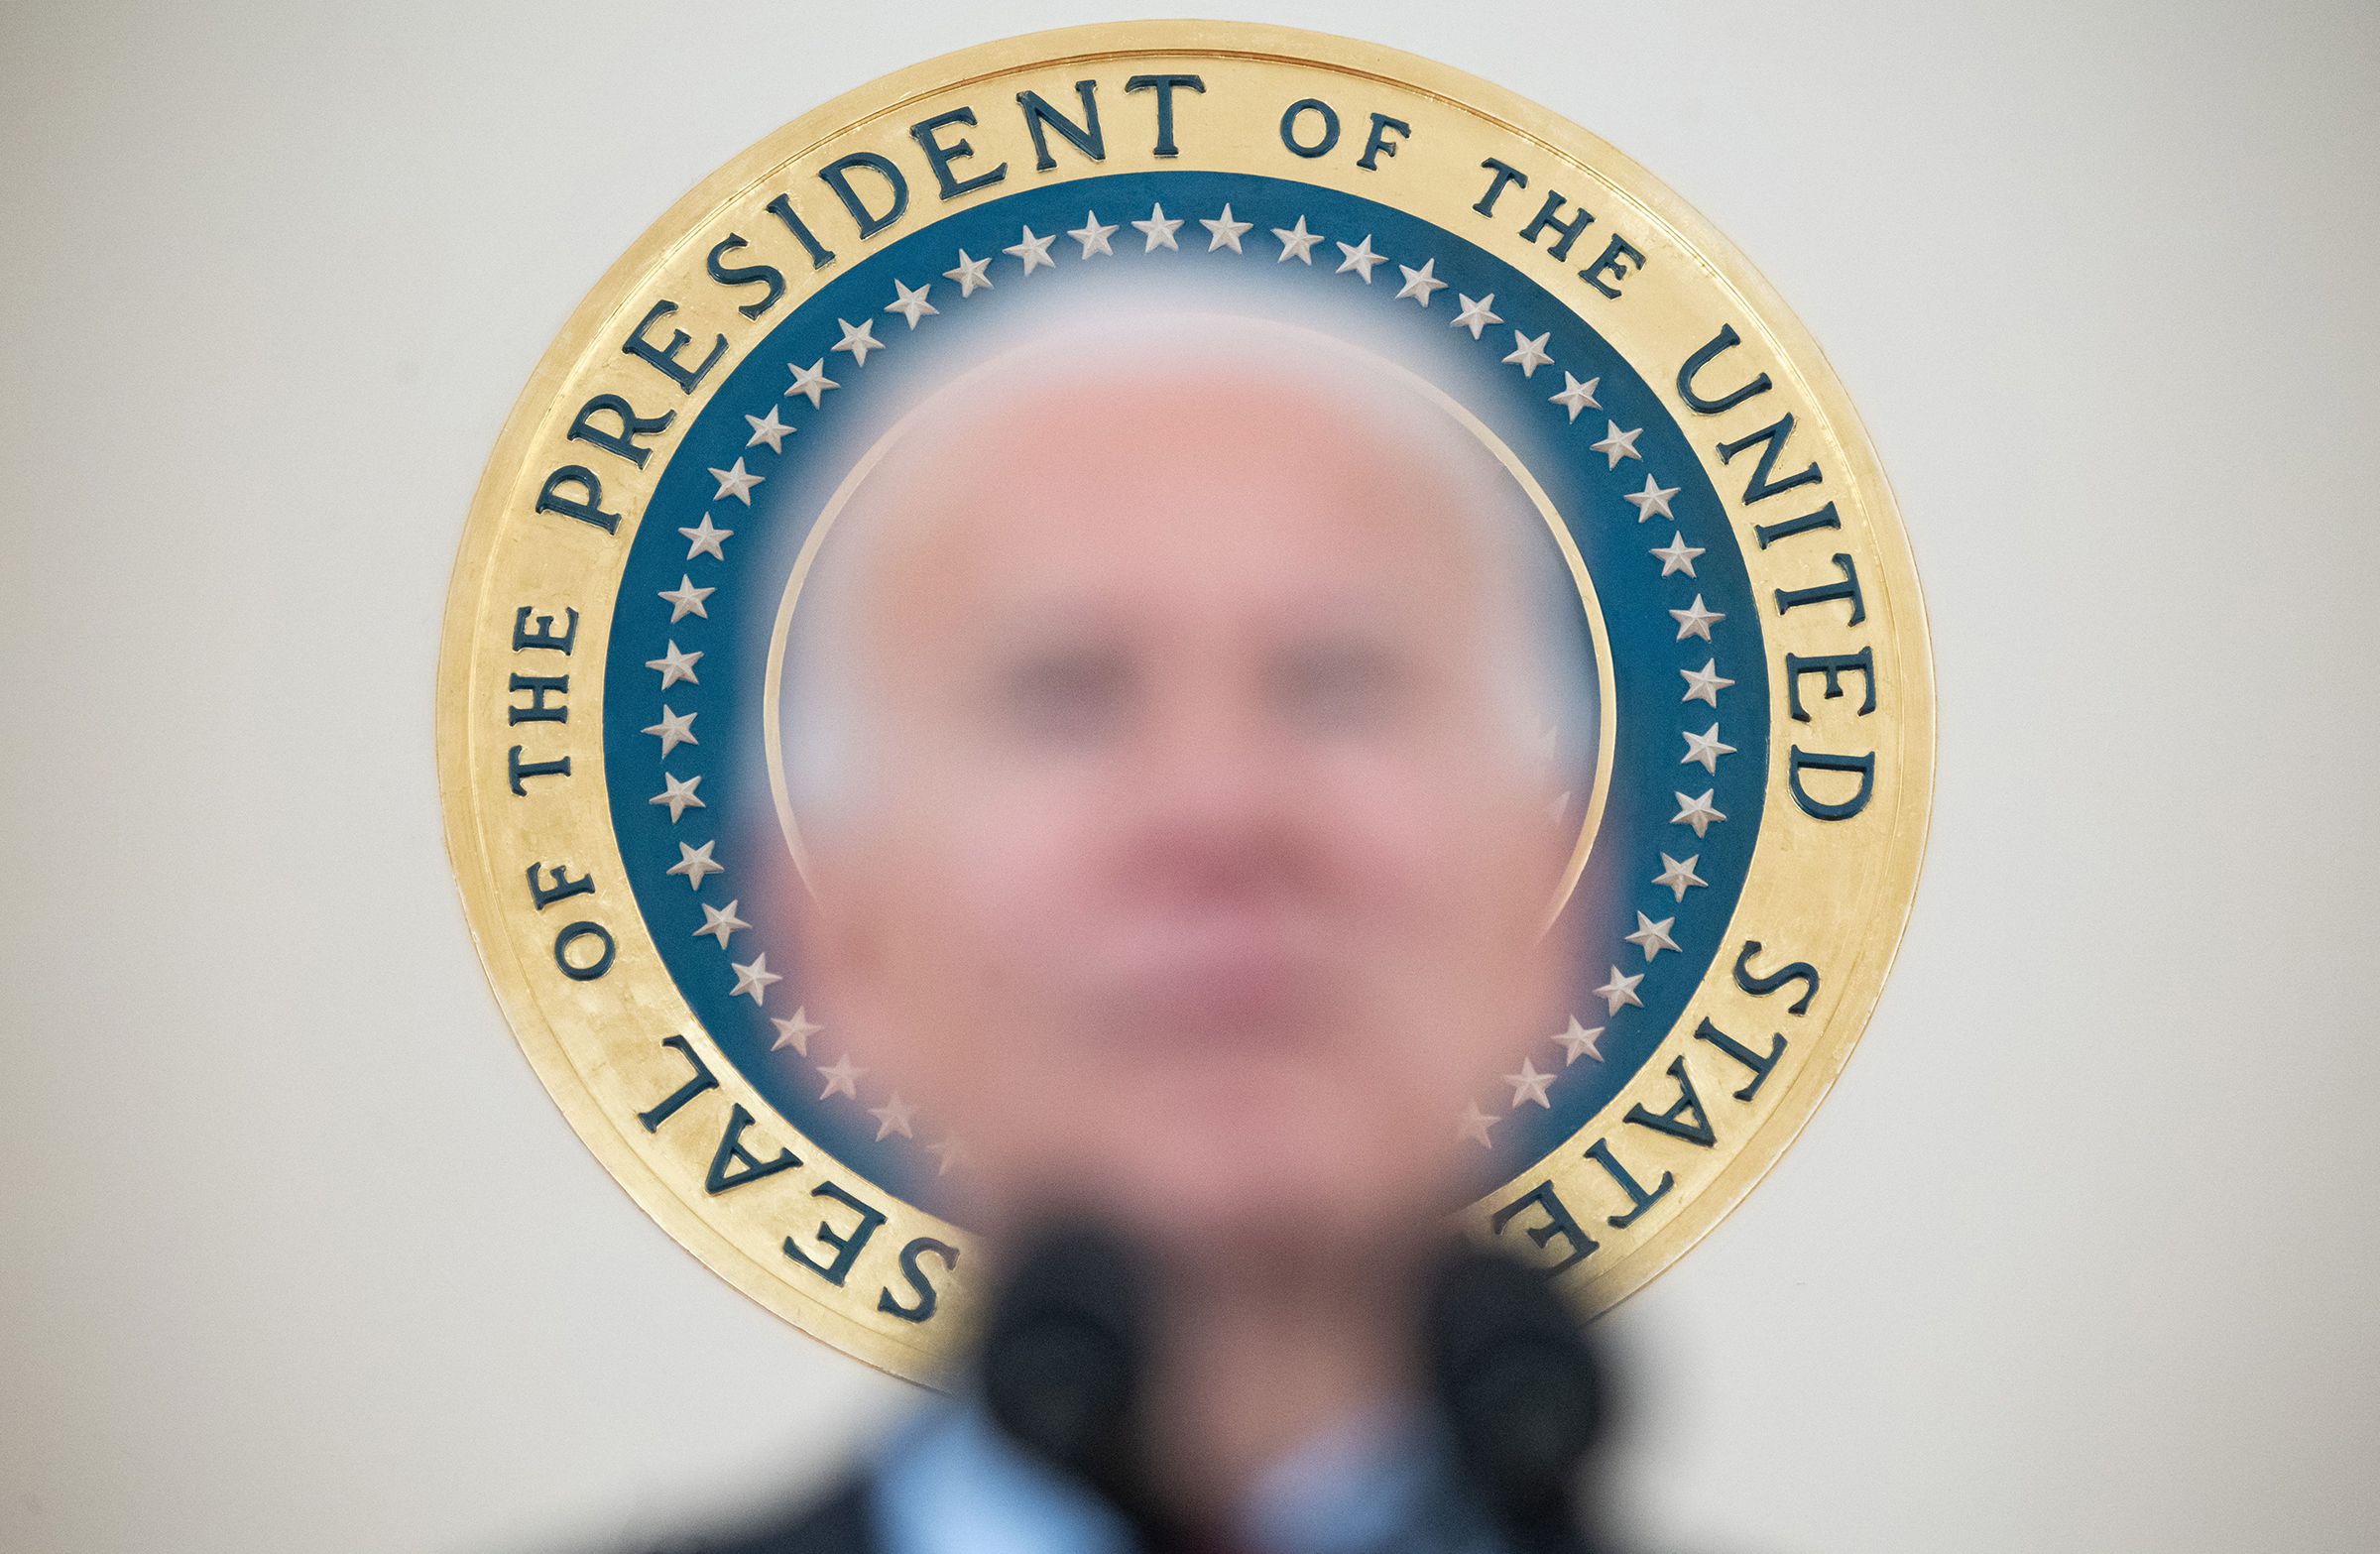 The seal of the President of the United States is seen as President Joe Biden speaks about lives lost to COVID-19 after the death toll passed 500,000, at the White House on Feb. 22, 2021.